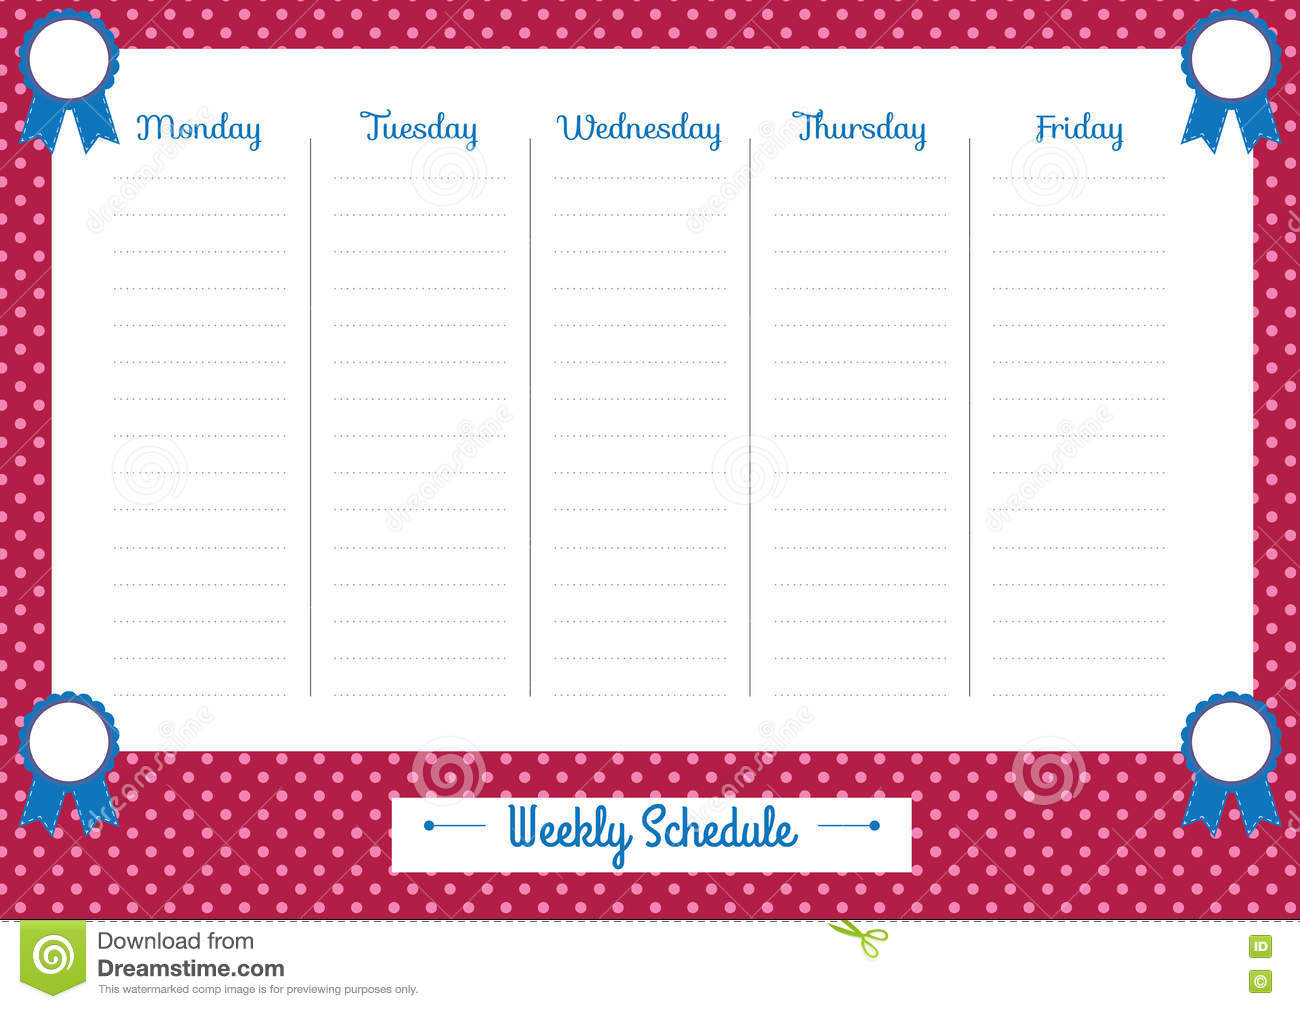 Cute Calendar Weekly Planner Template Illustration Organizer And Schedule